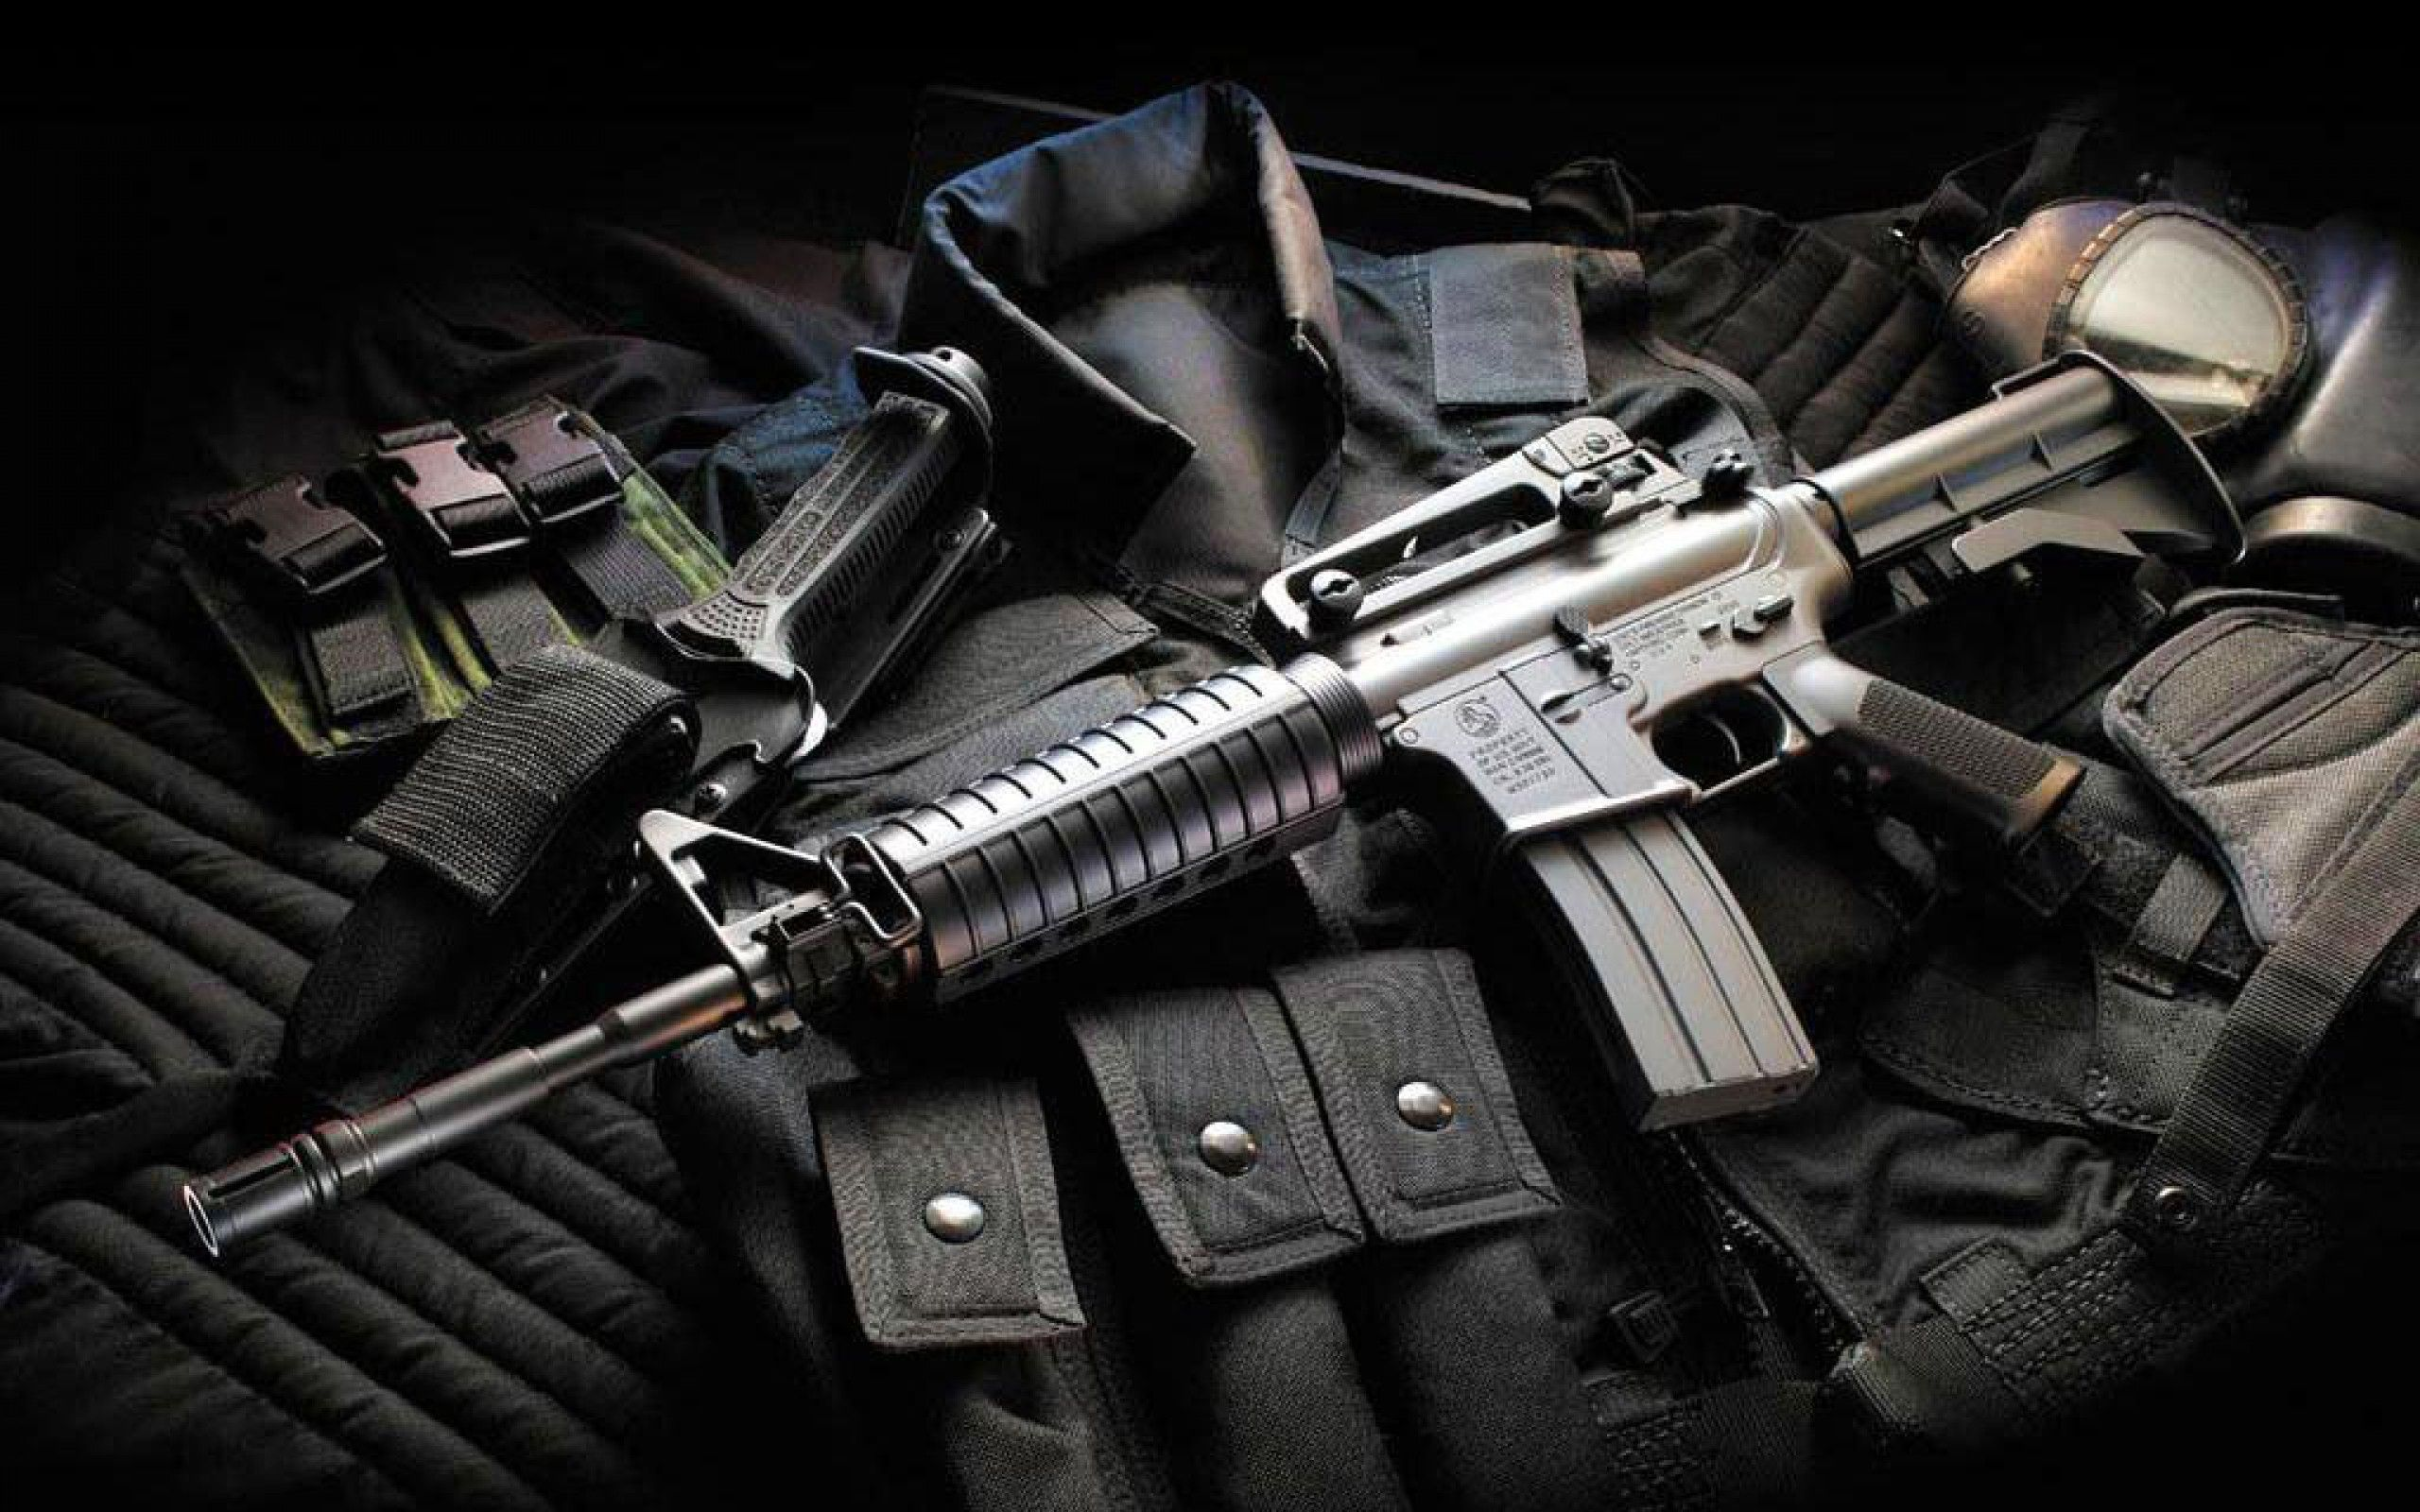 108 Best Images About Weapons Wallpapers On Pinterest: Gun Wallpaper Find Best Latest Gun Wallpaper For Your PC